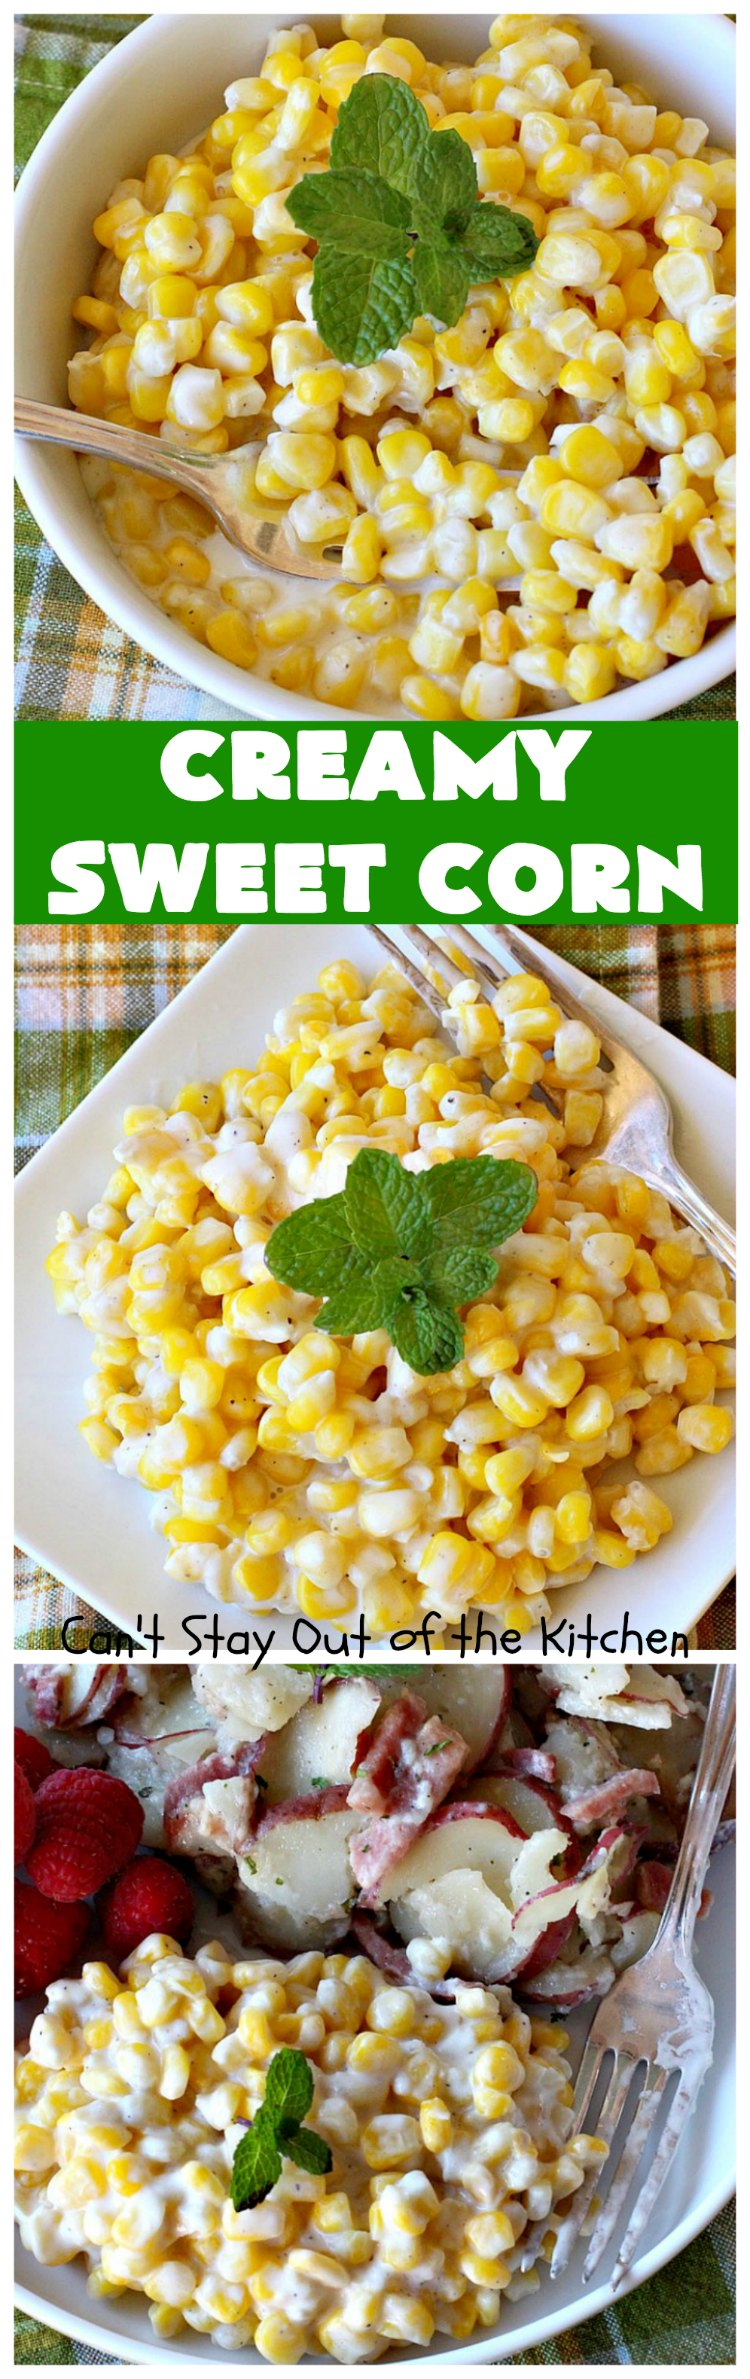 Creamy Sweet Corn | Can't Stay Out of the Kitchen